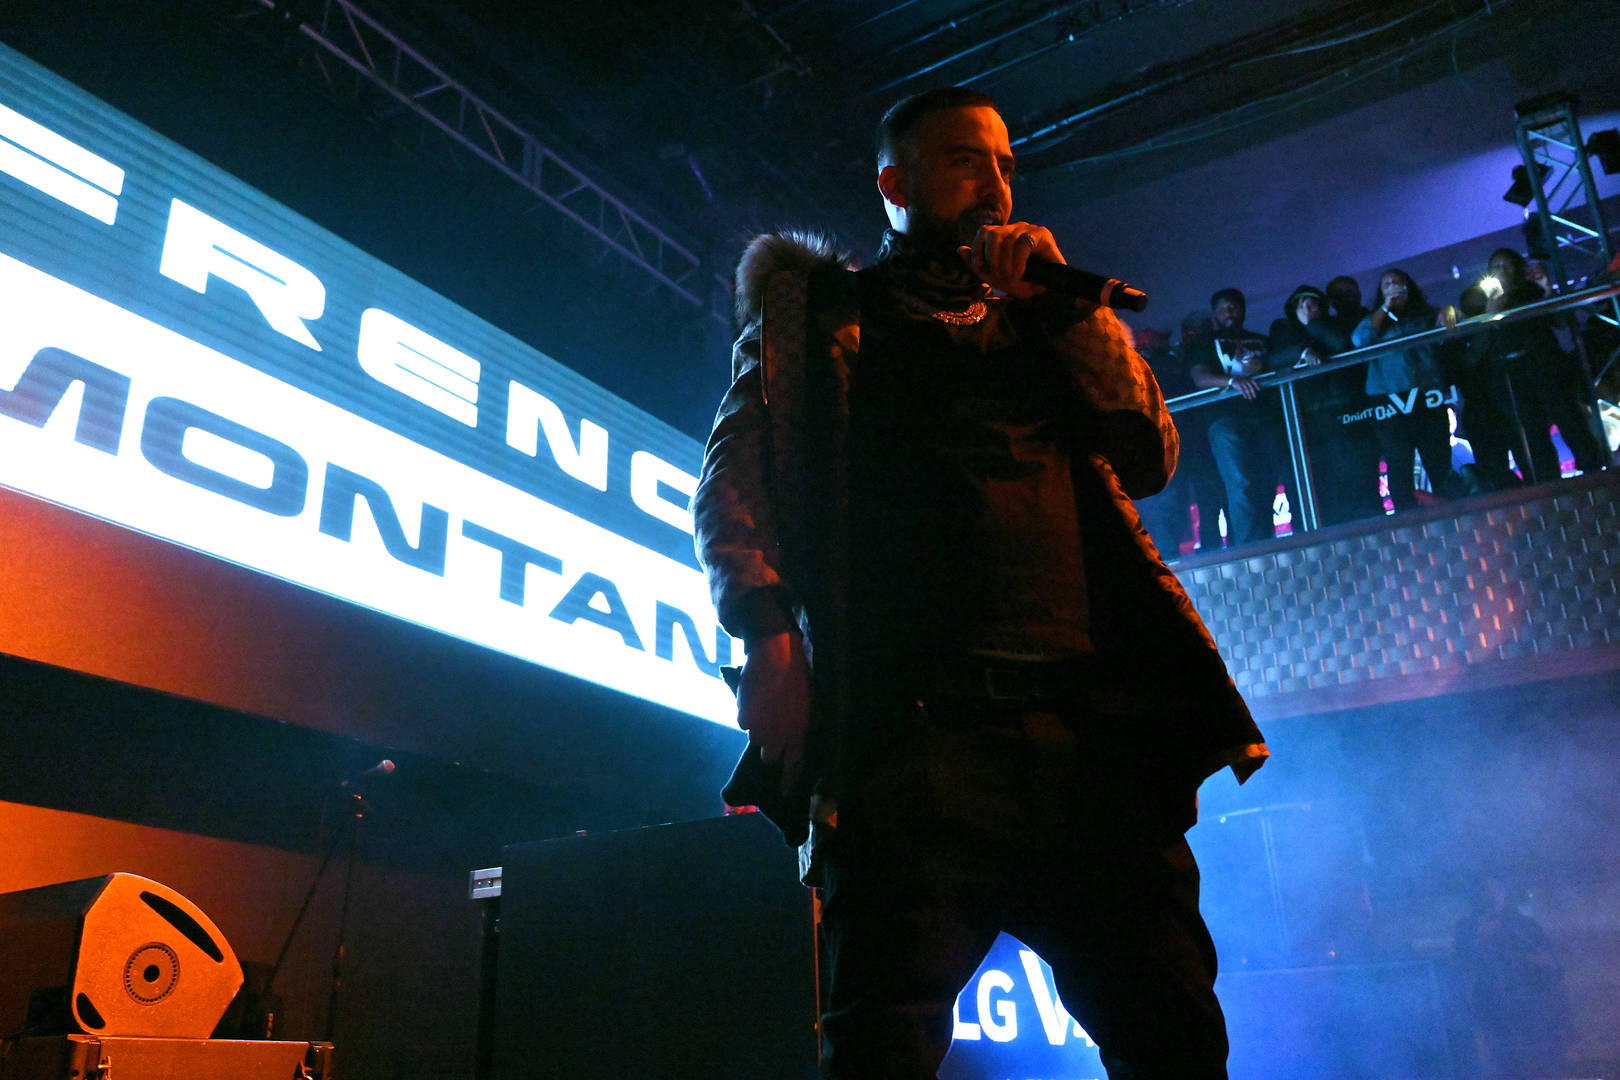 French Montana, Cardi B & Post Malone Shoot Visuals For New Song